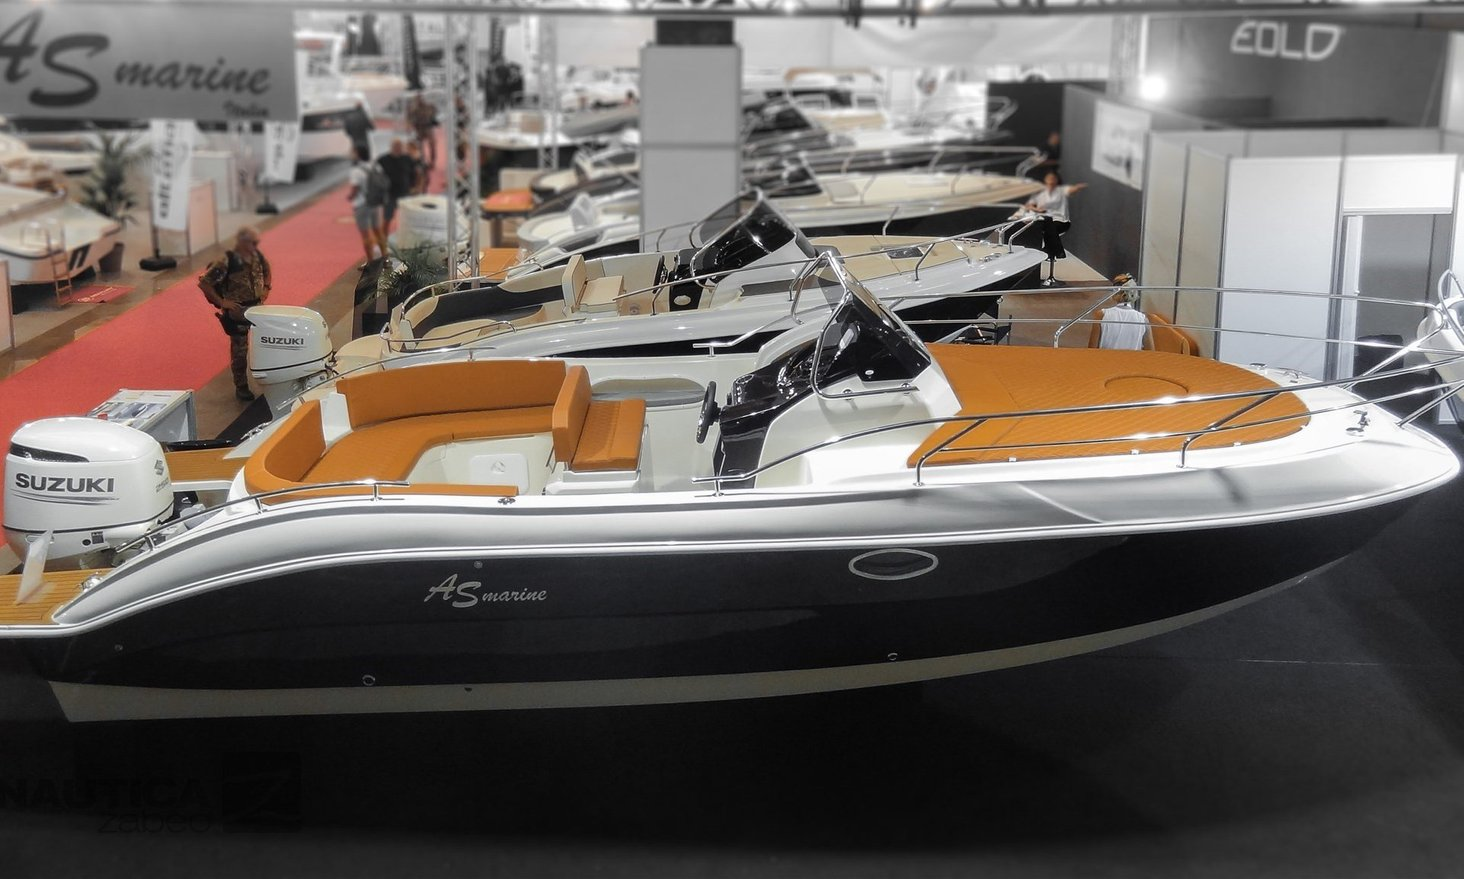 New AS Marine 25 GT for sale Boatim